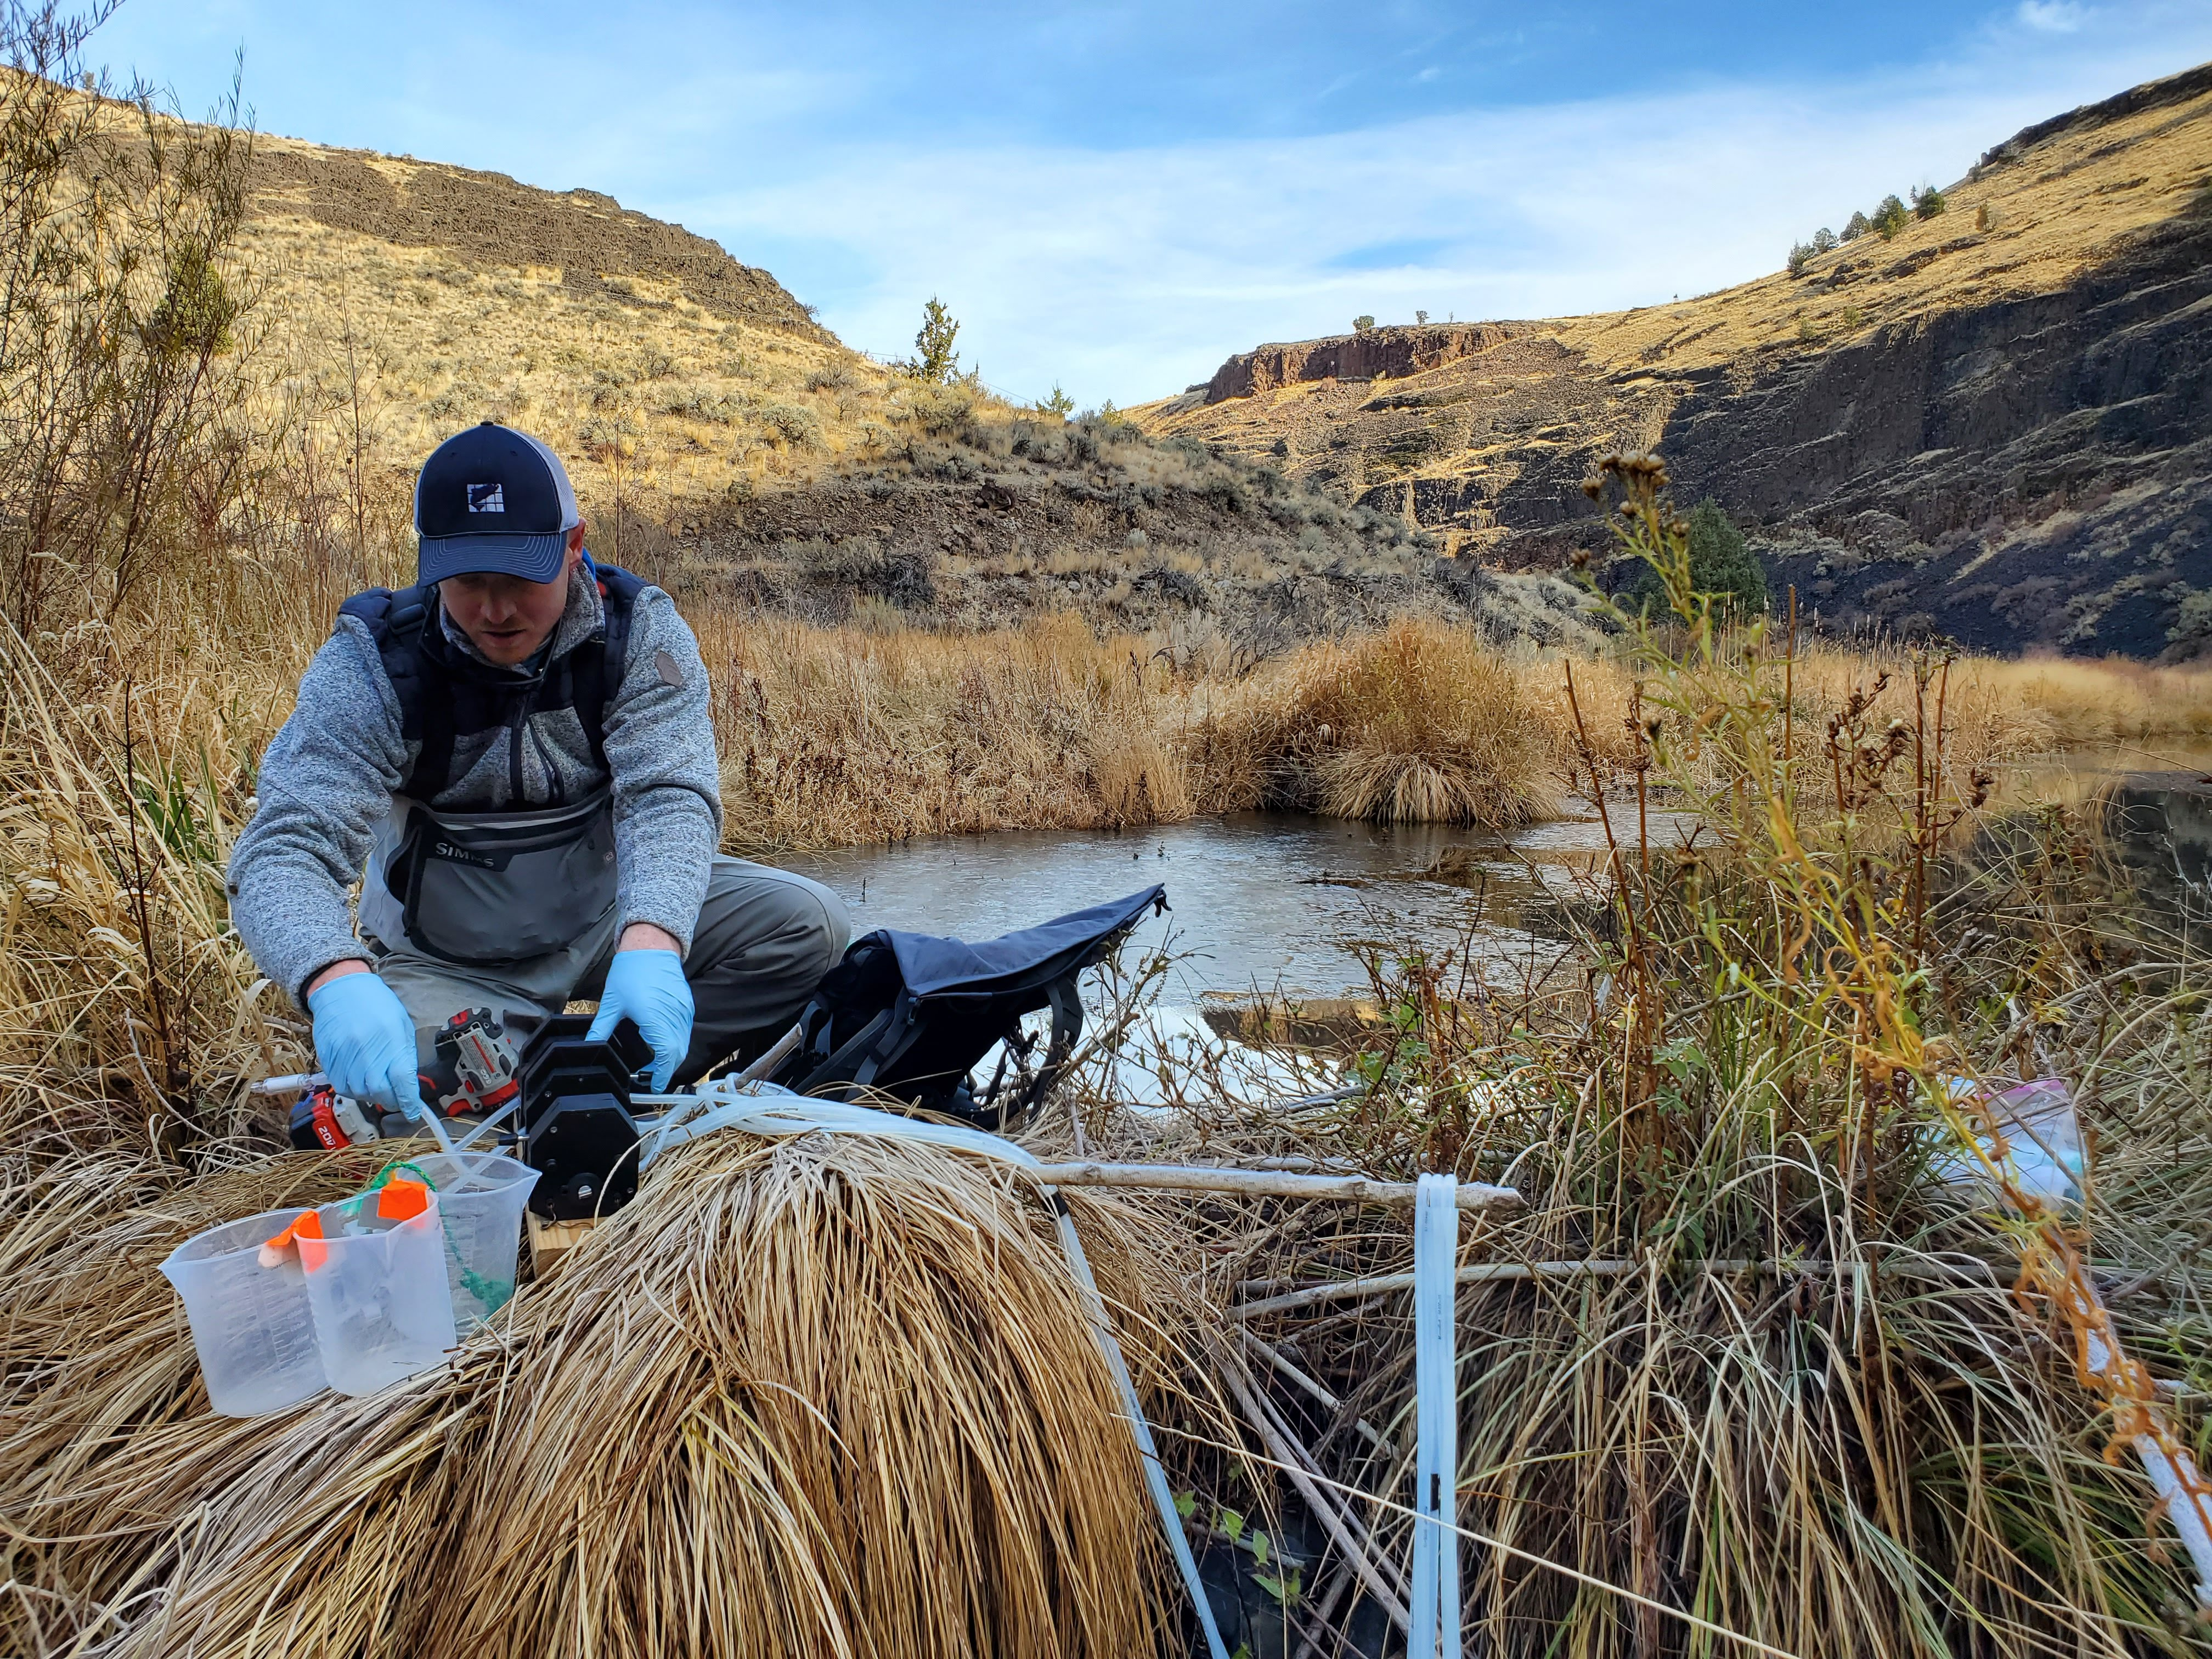 One of the researchers sets up equipment to take eDNA samples.